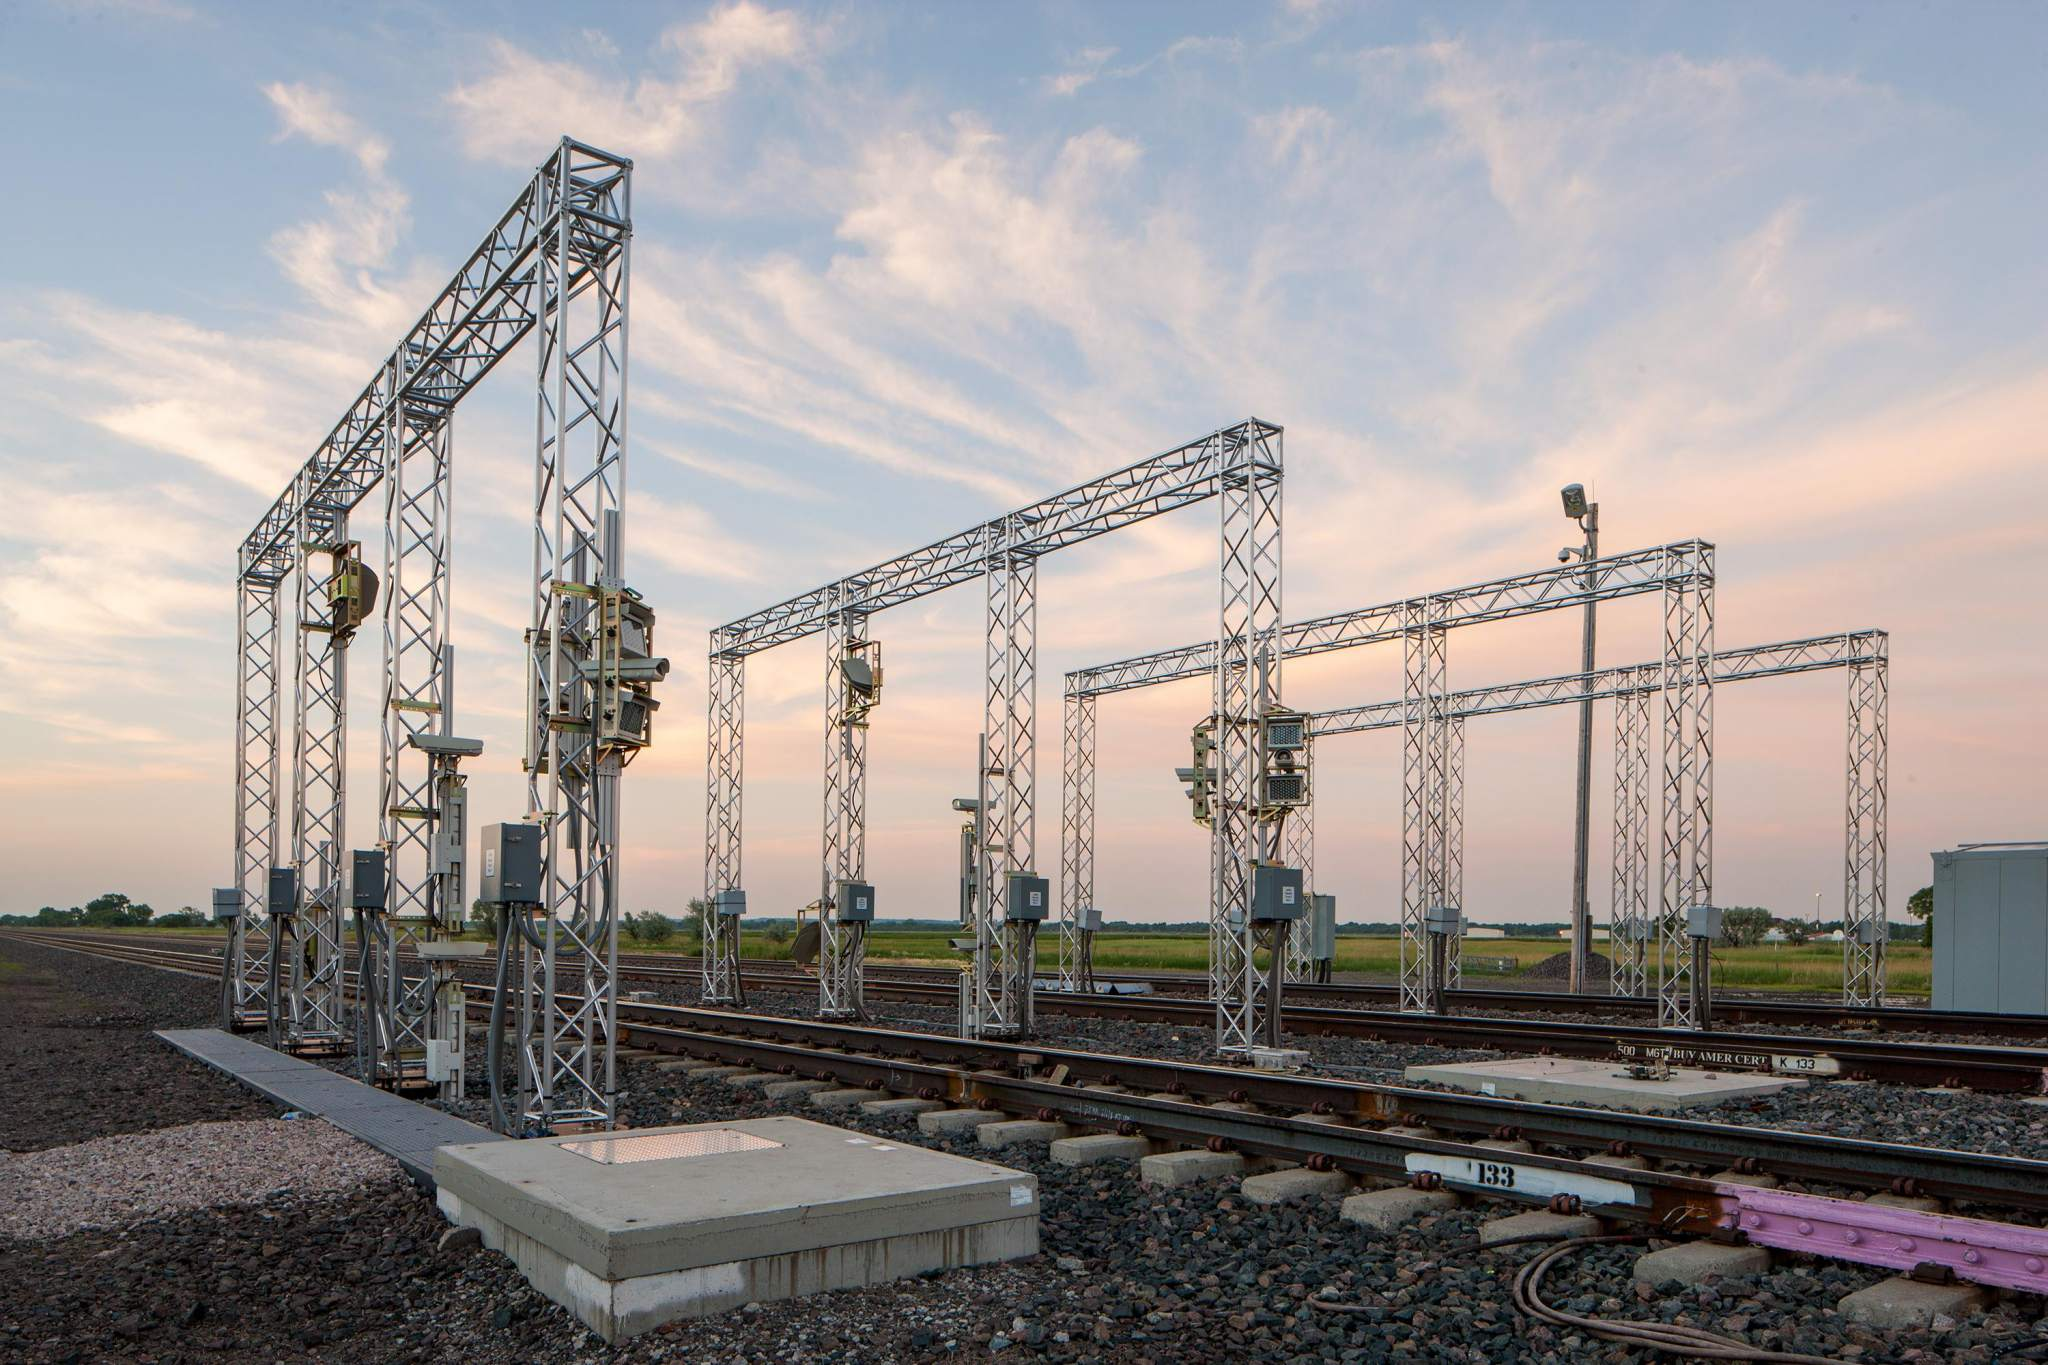 The Machine Vision imaging area. Photo via Union Pacific.